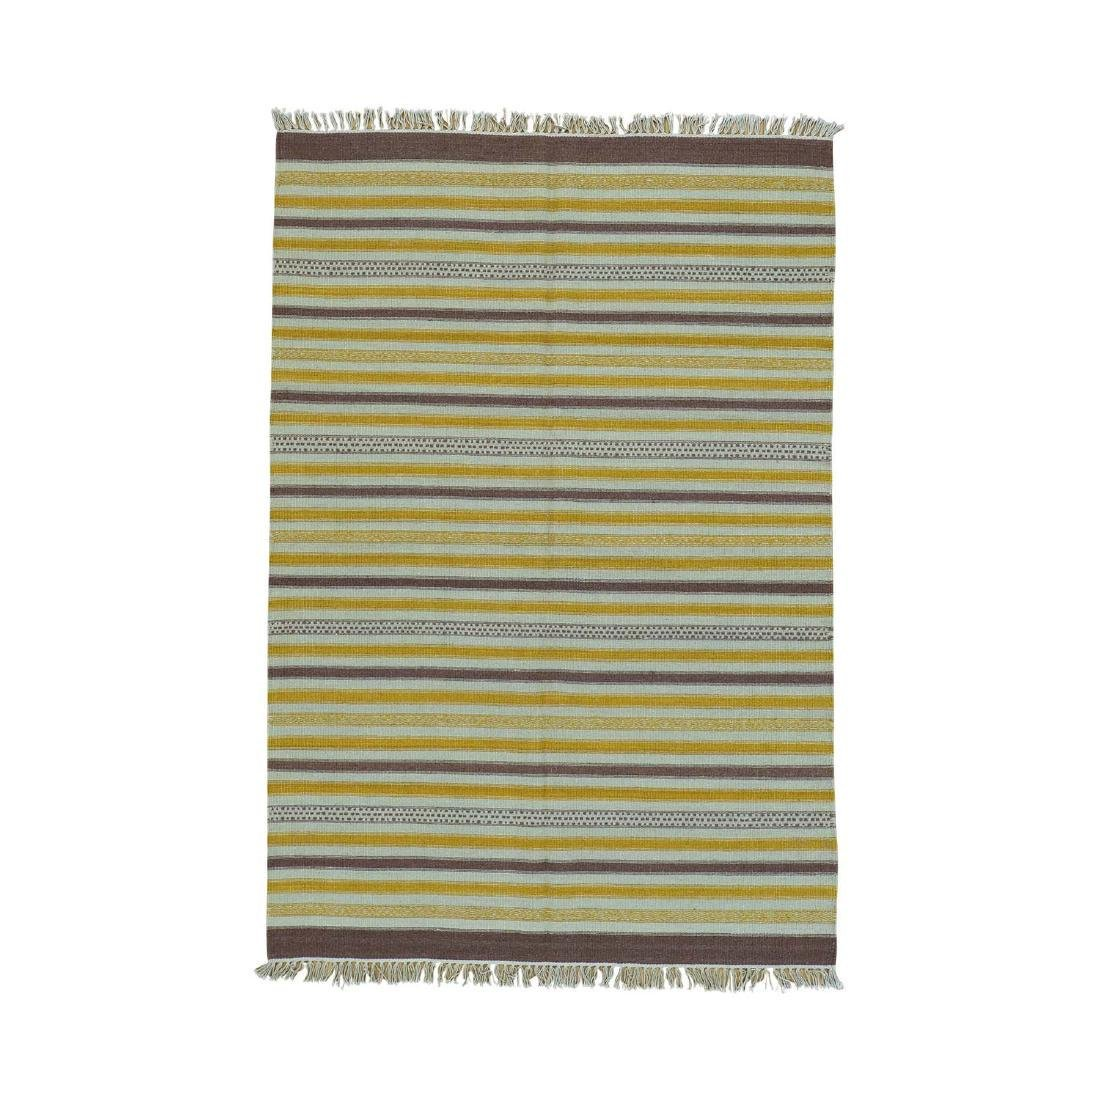 Durie Kilim Striped Flat Weave Reversible Pure Wool